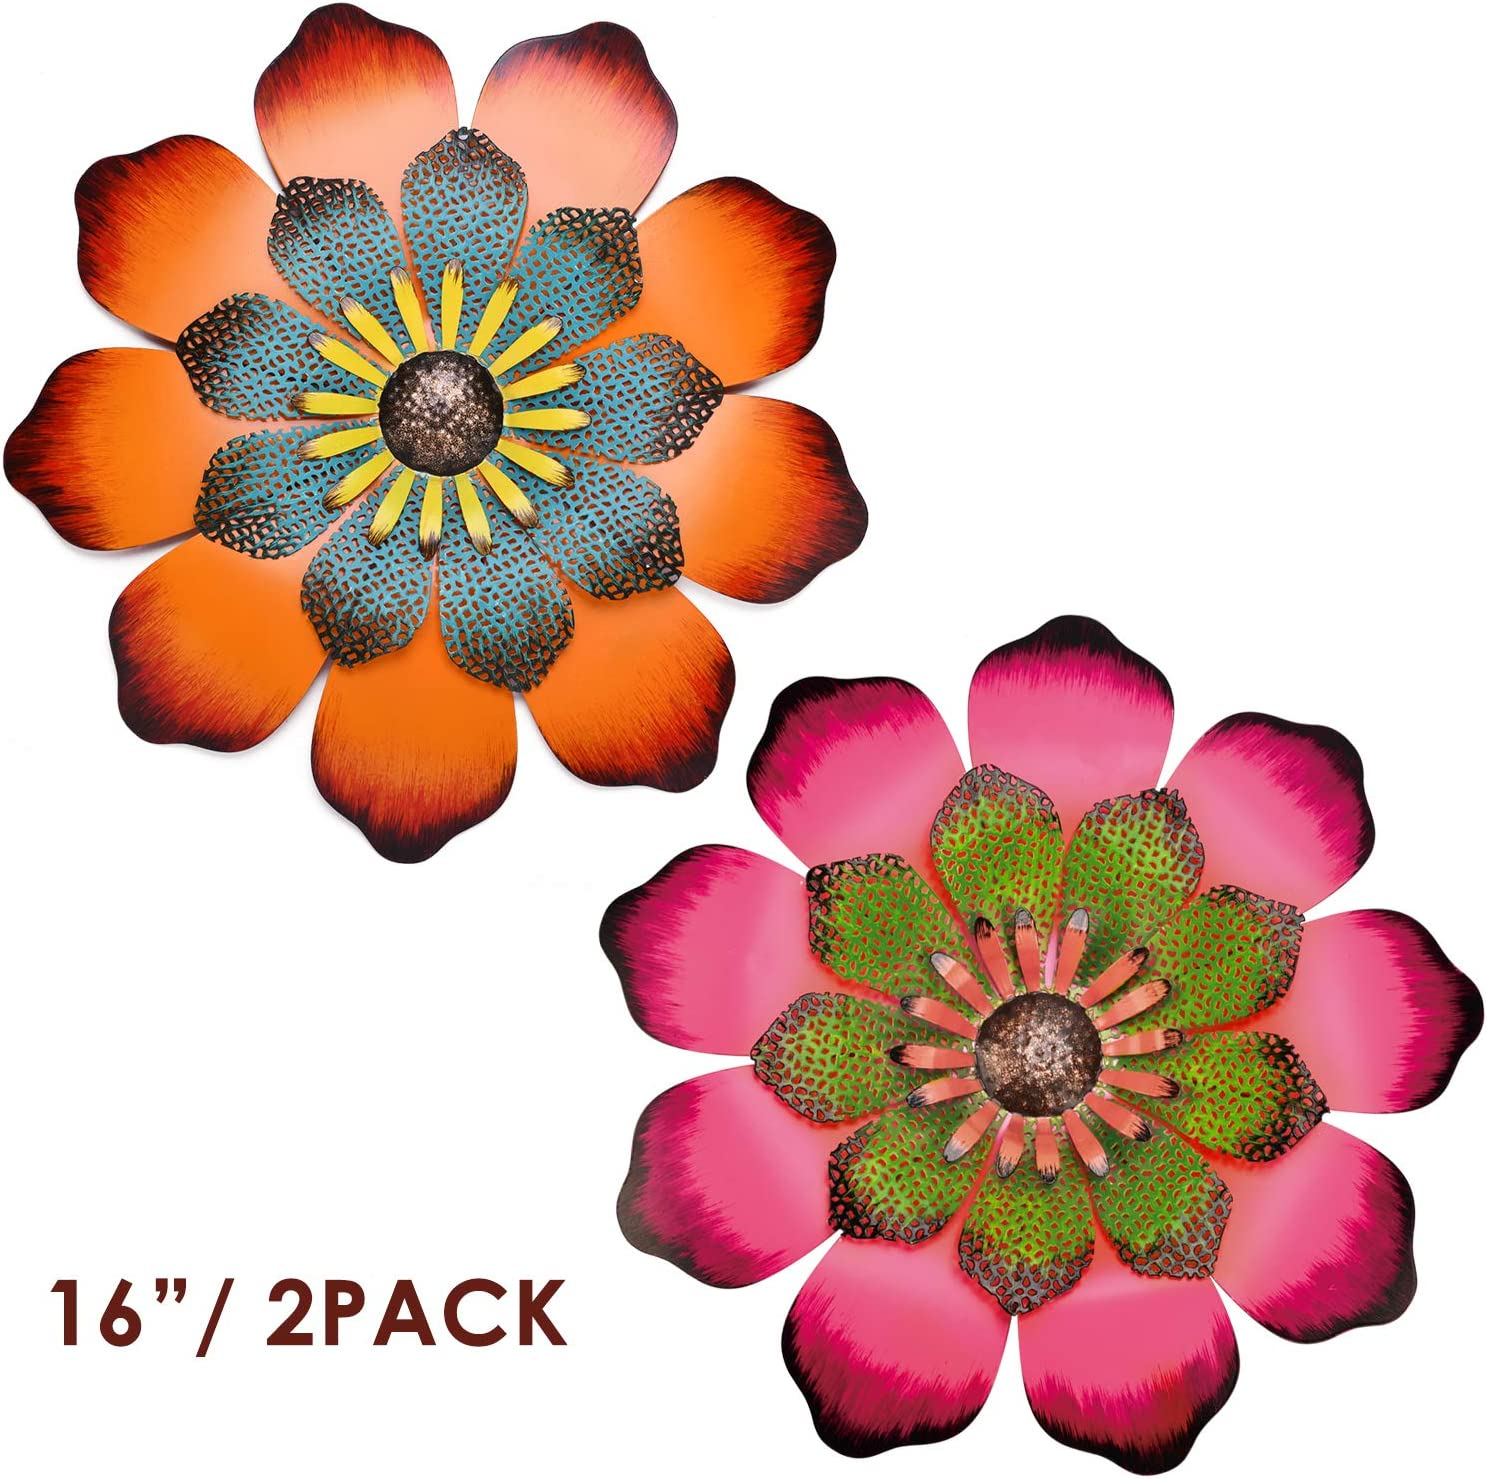 Yeahome 16'' Metal Flower Wall Decor - Wall Art Decorations Hanging for Bedroom, Living Room, Bathroom- Office/Home Decor Boho Art, Handmade Gift for Indoor or Outdoor, Set of 2(Tangerine & Hot Pink) Mothers day gifts